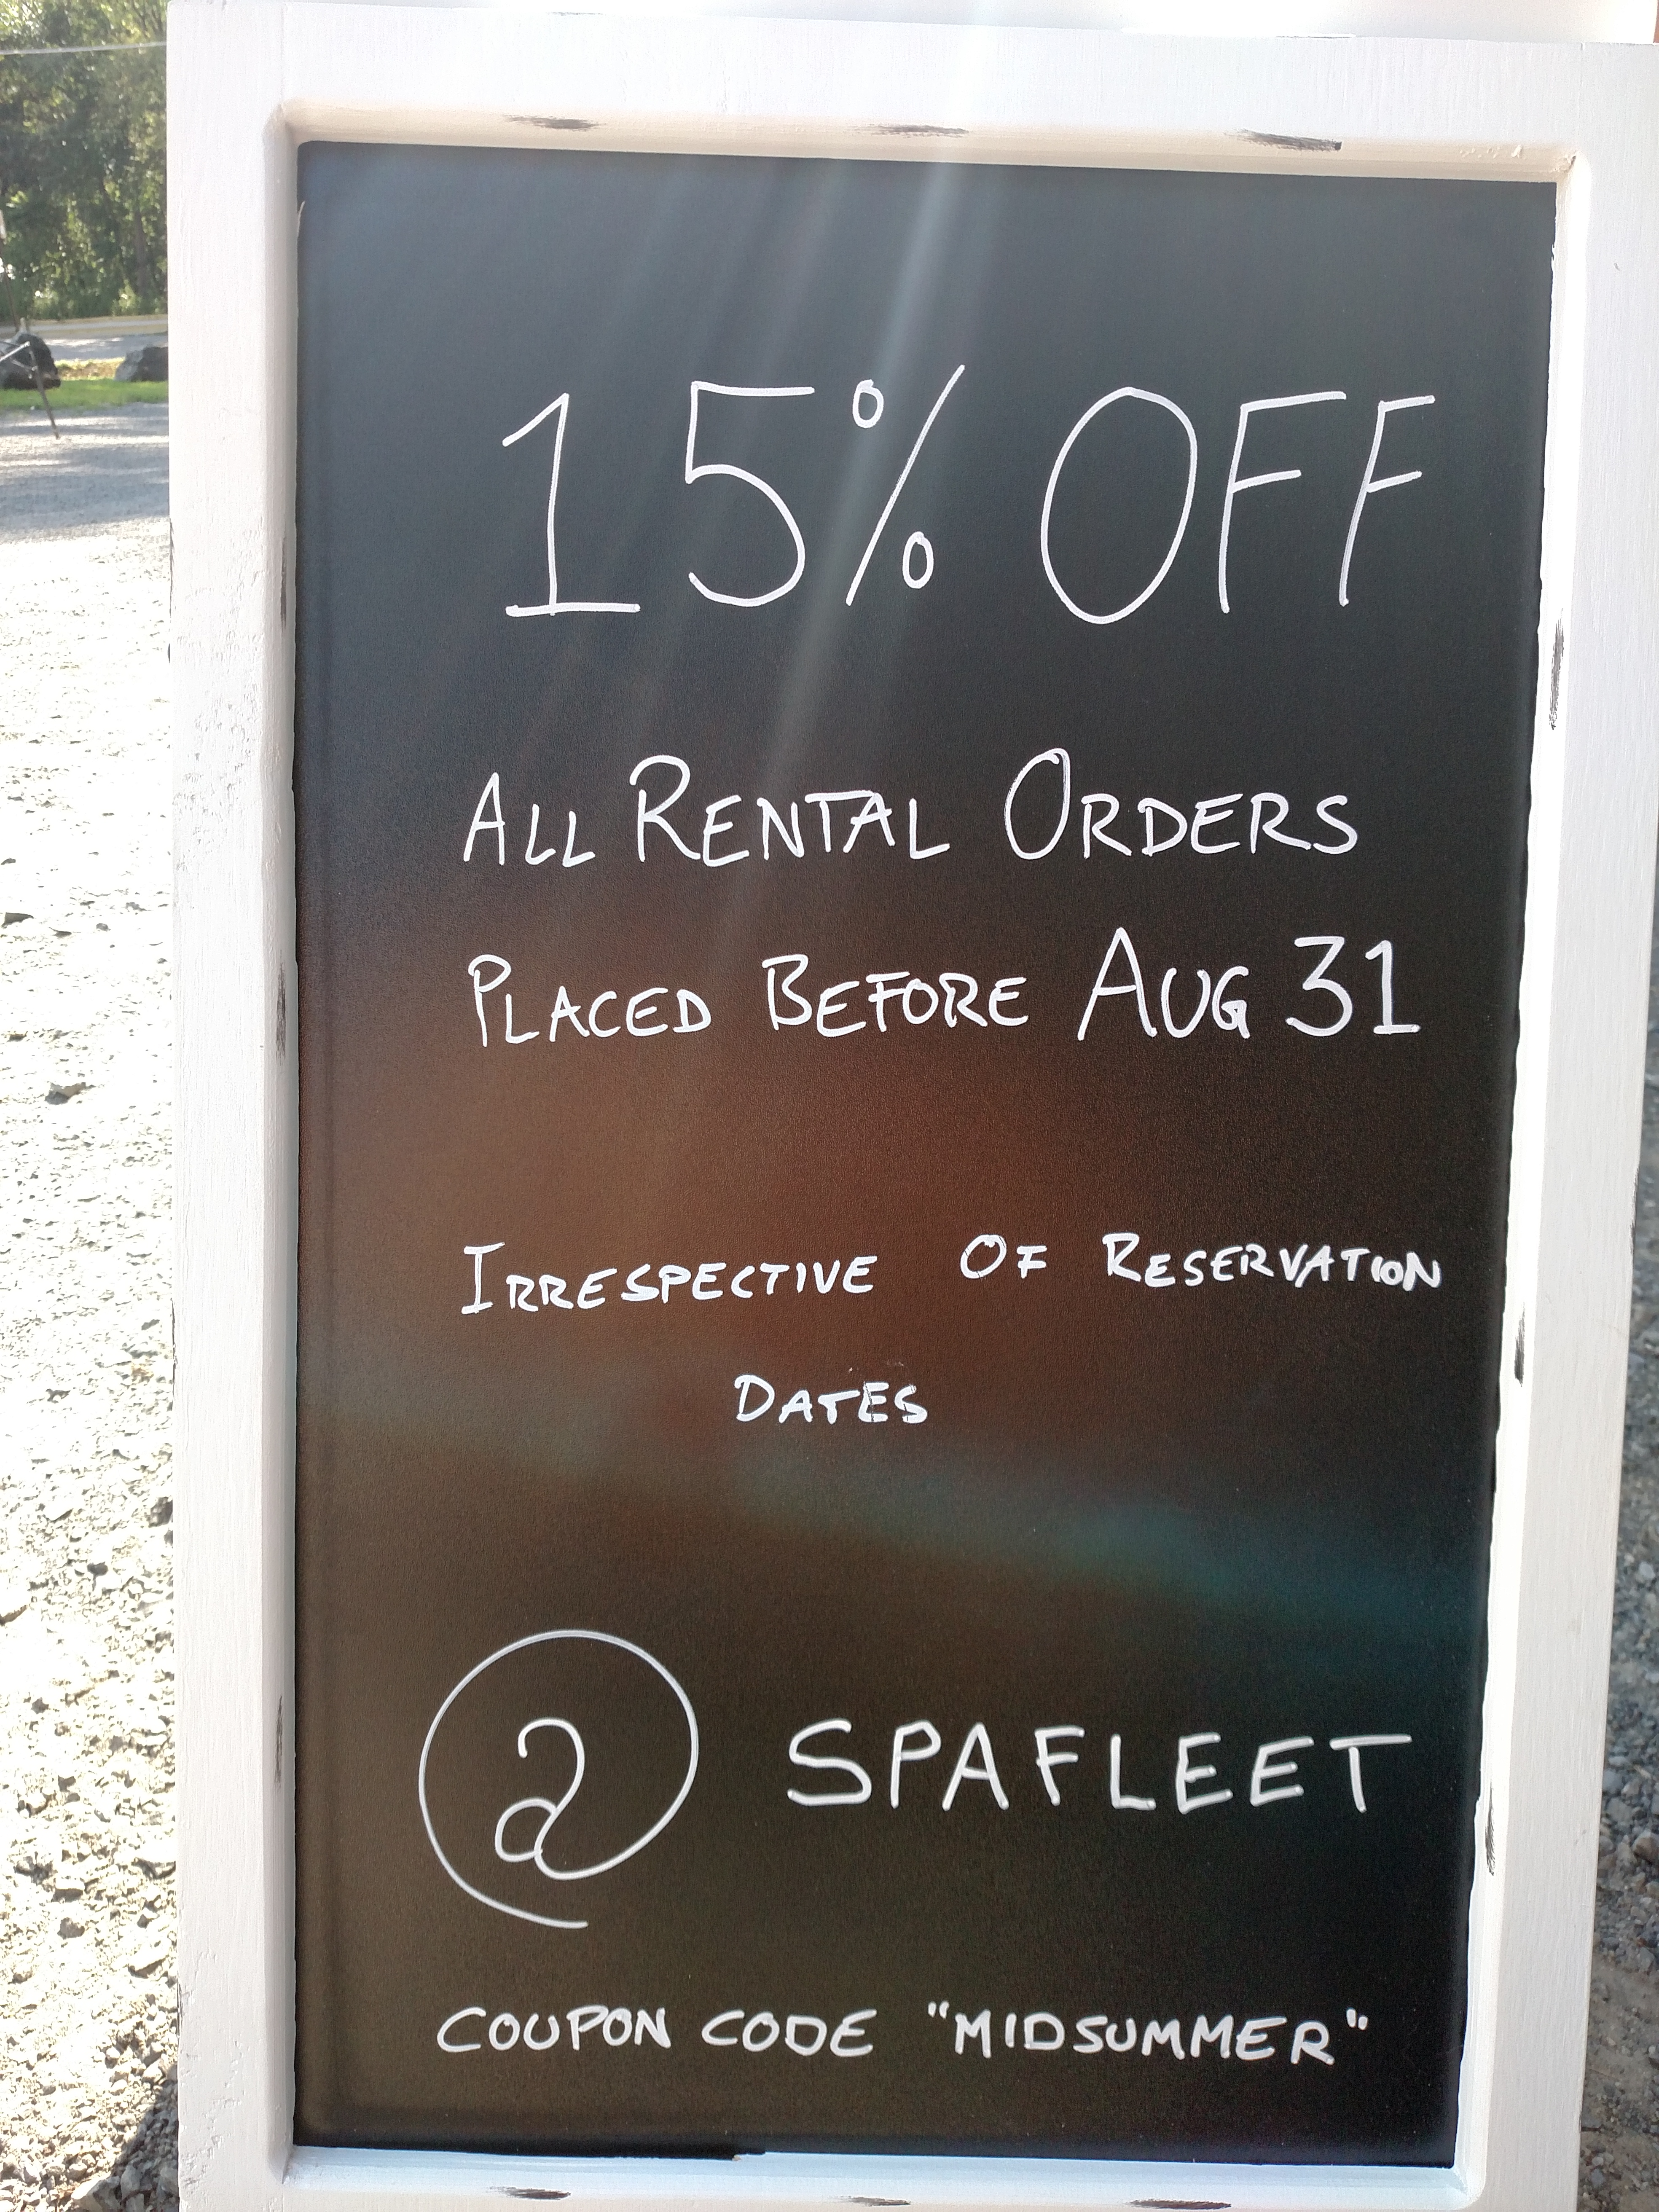 Spa Fleet Rental Orders